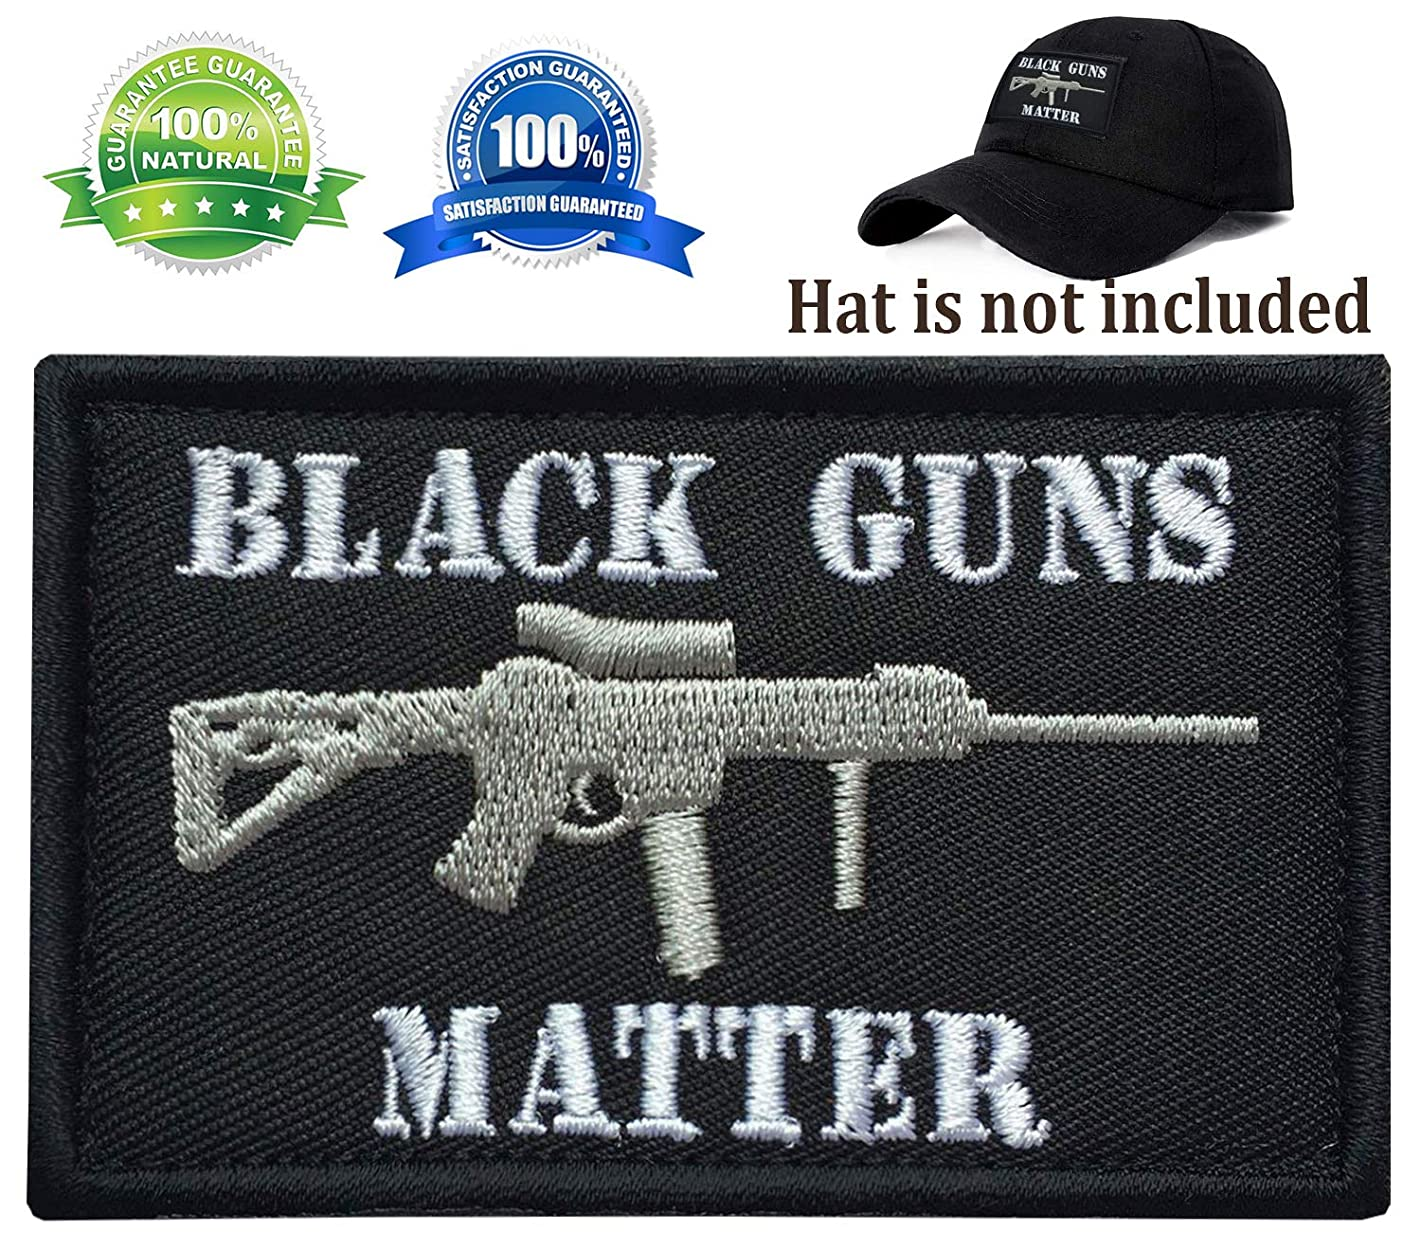 Ehope 3D Embroidery Black Guns Matter Patch Tactical Morale Badge Hook & Loop Patch(Black Guns Matter-BLK+WHT)